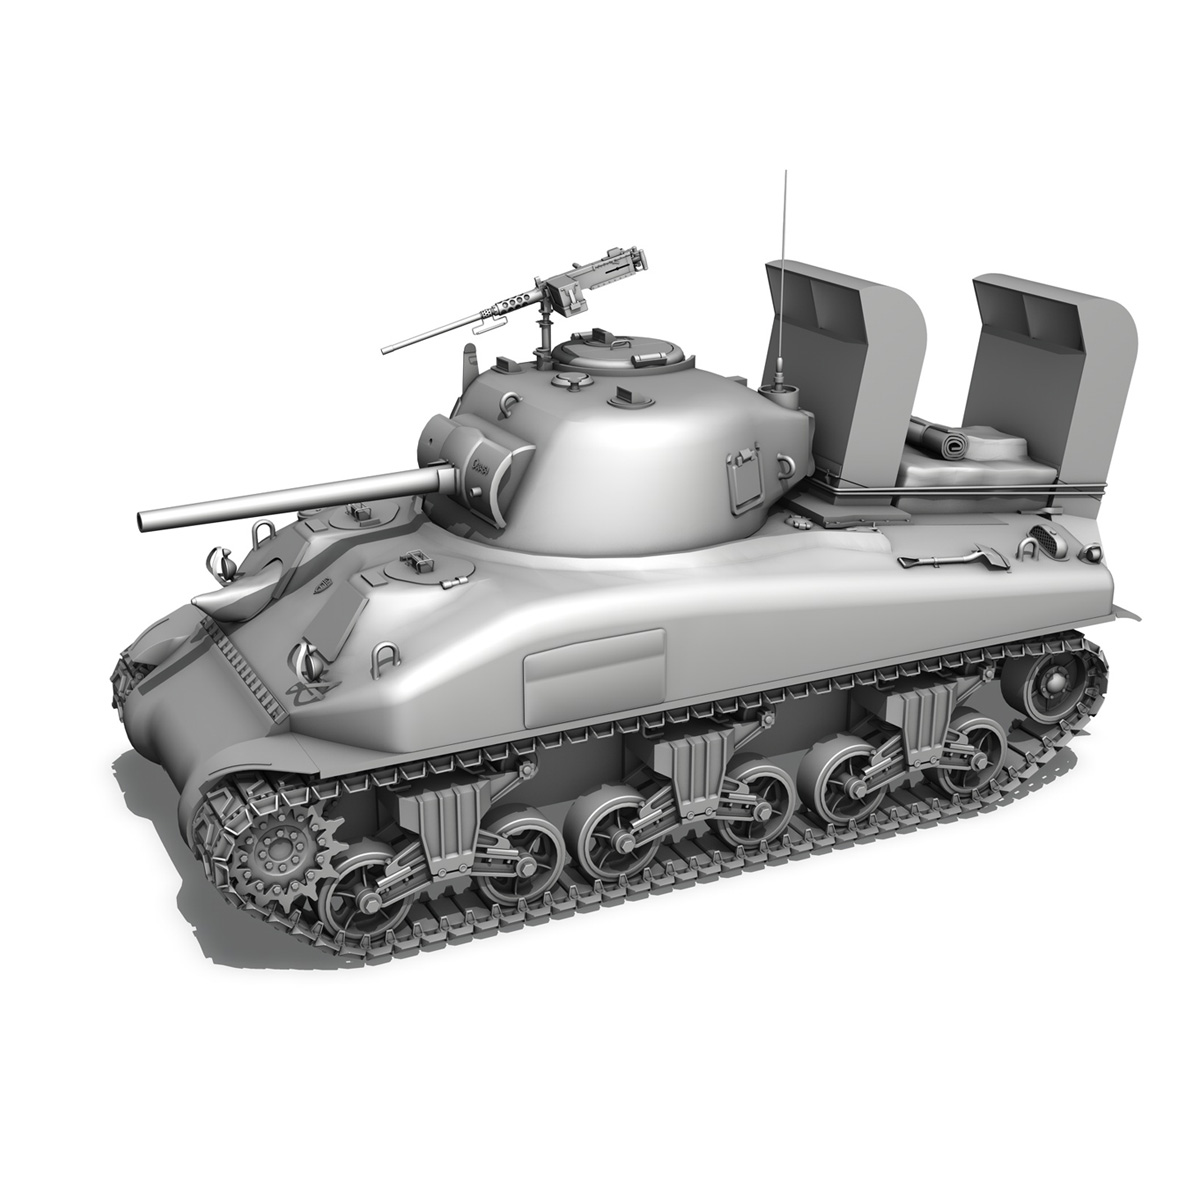 m4a1 sherman – 16 3d model 3ds fbx c4d lwo obj 273060